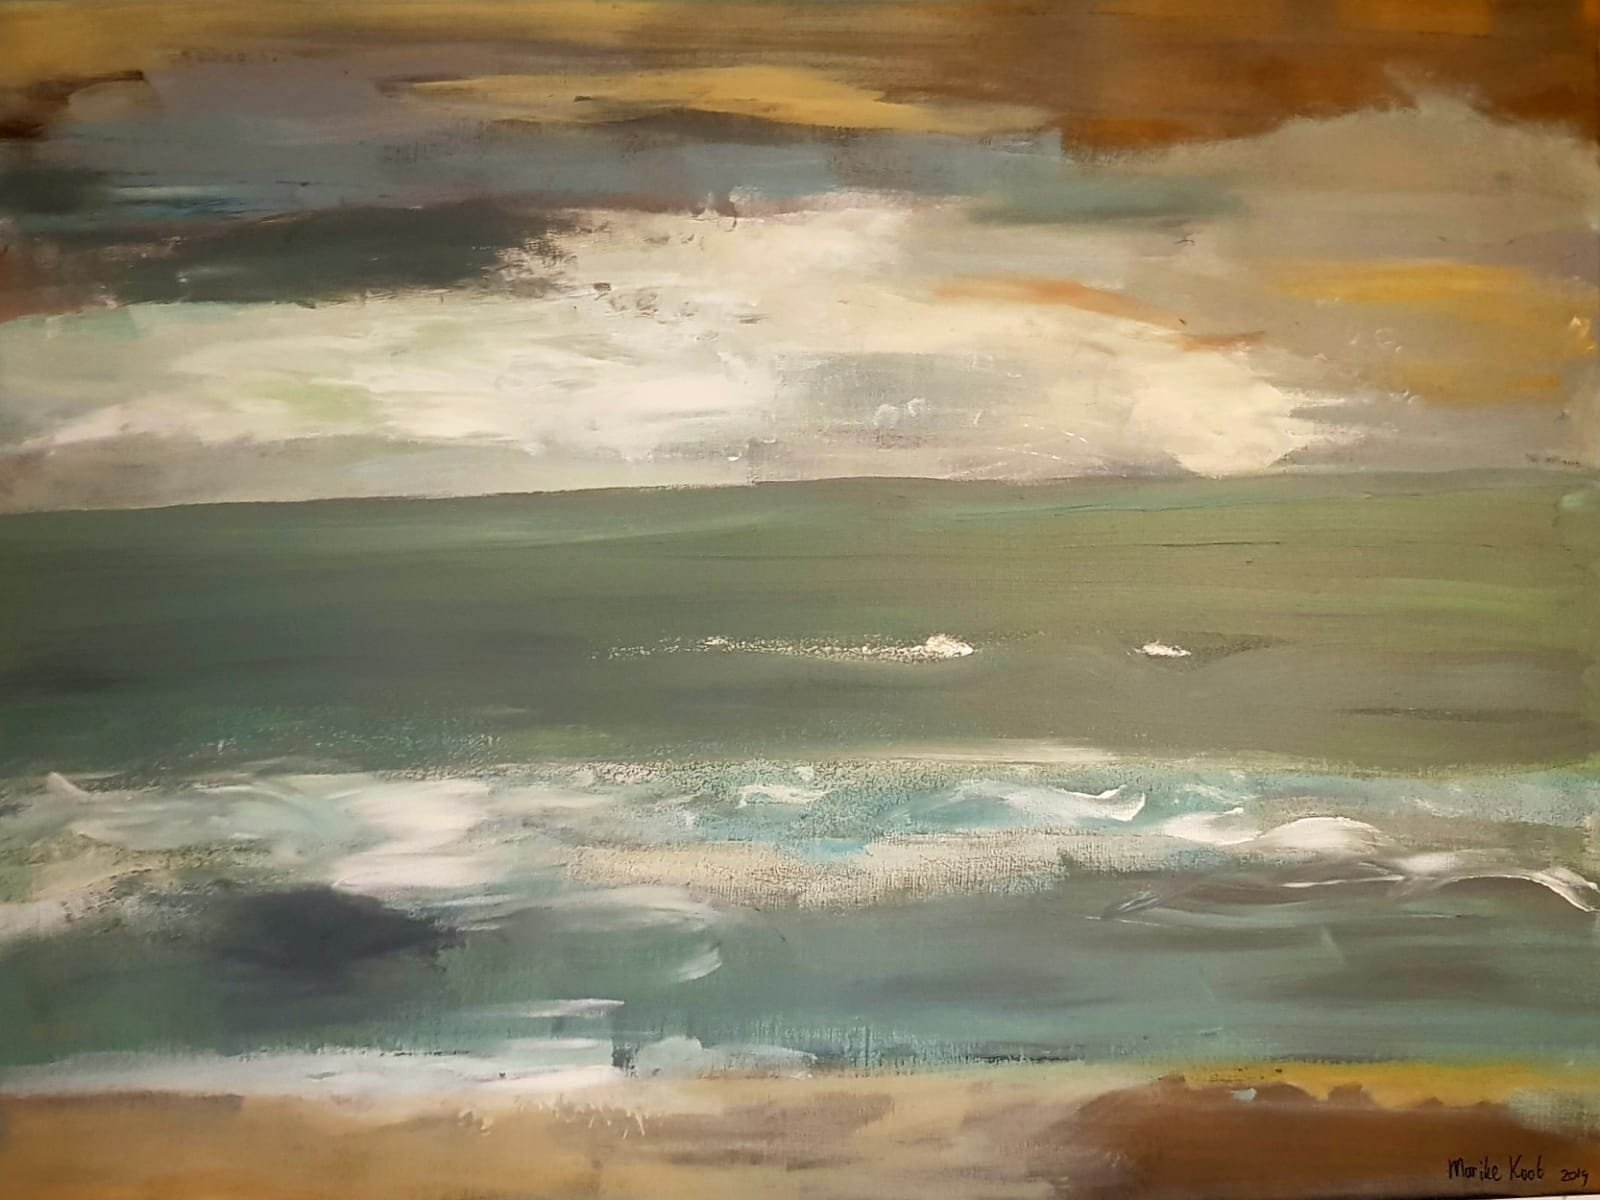 The North sea - 80 by 60 cm